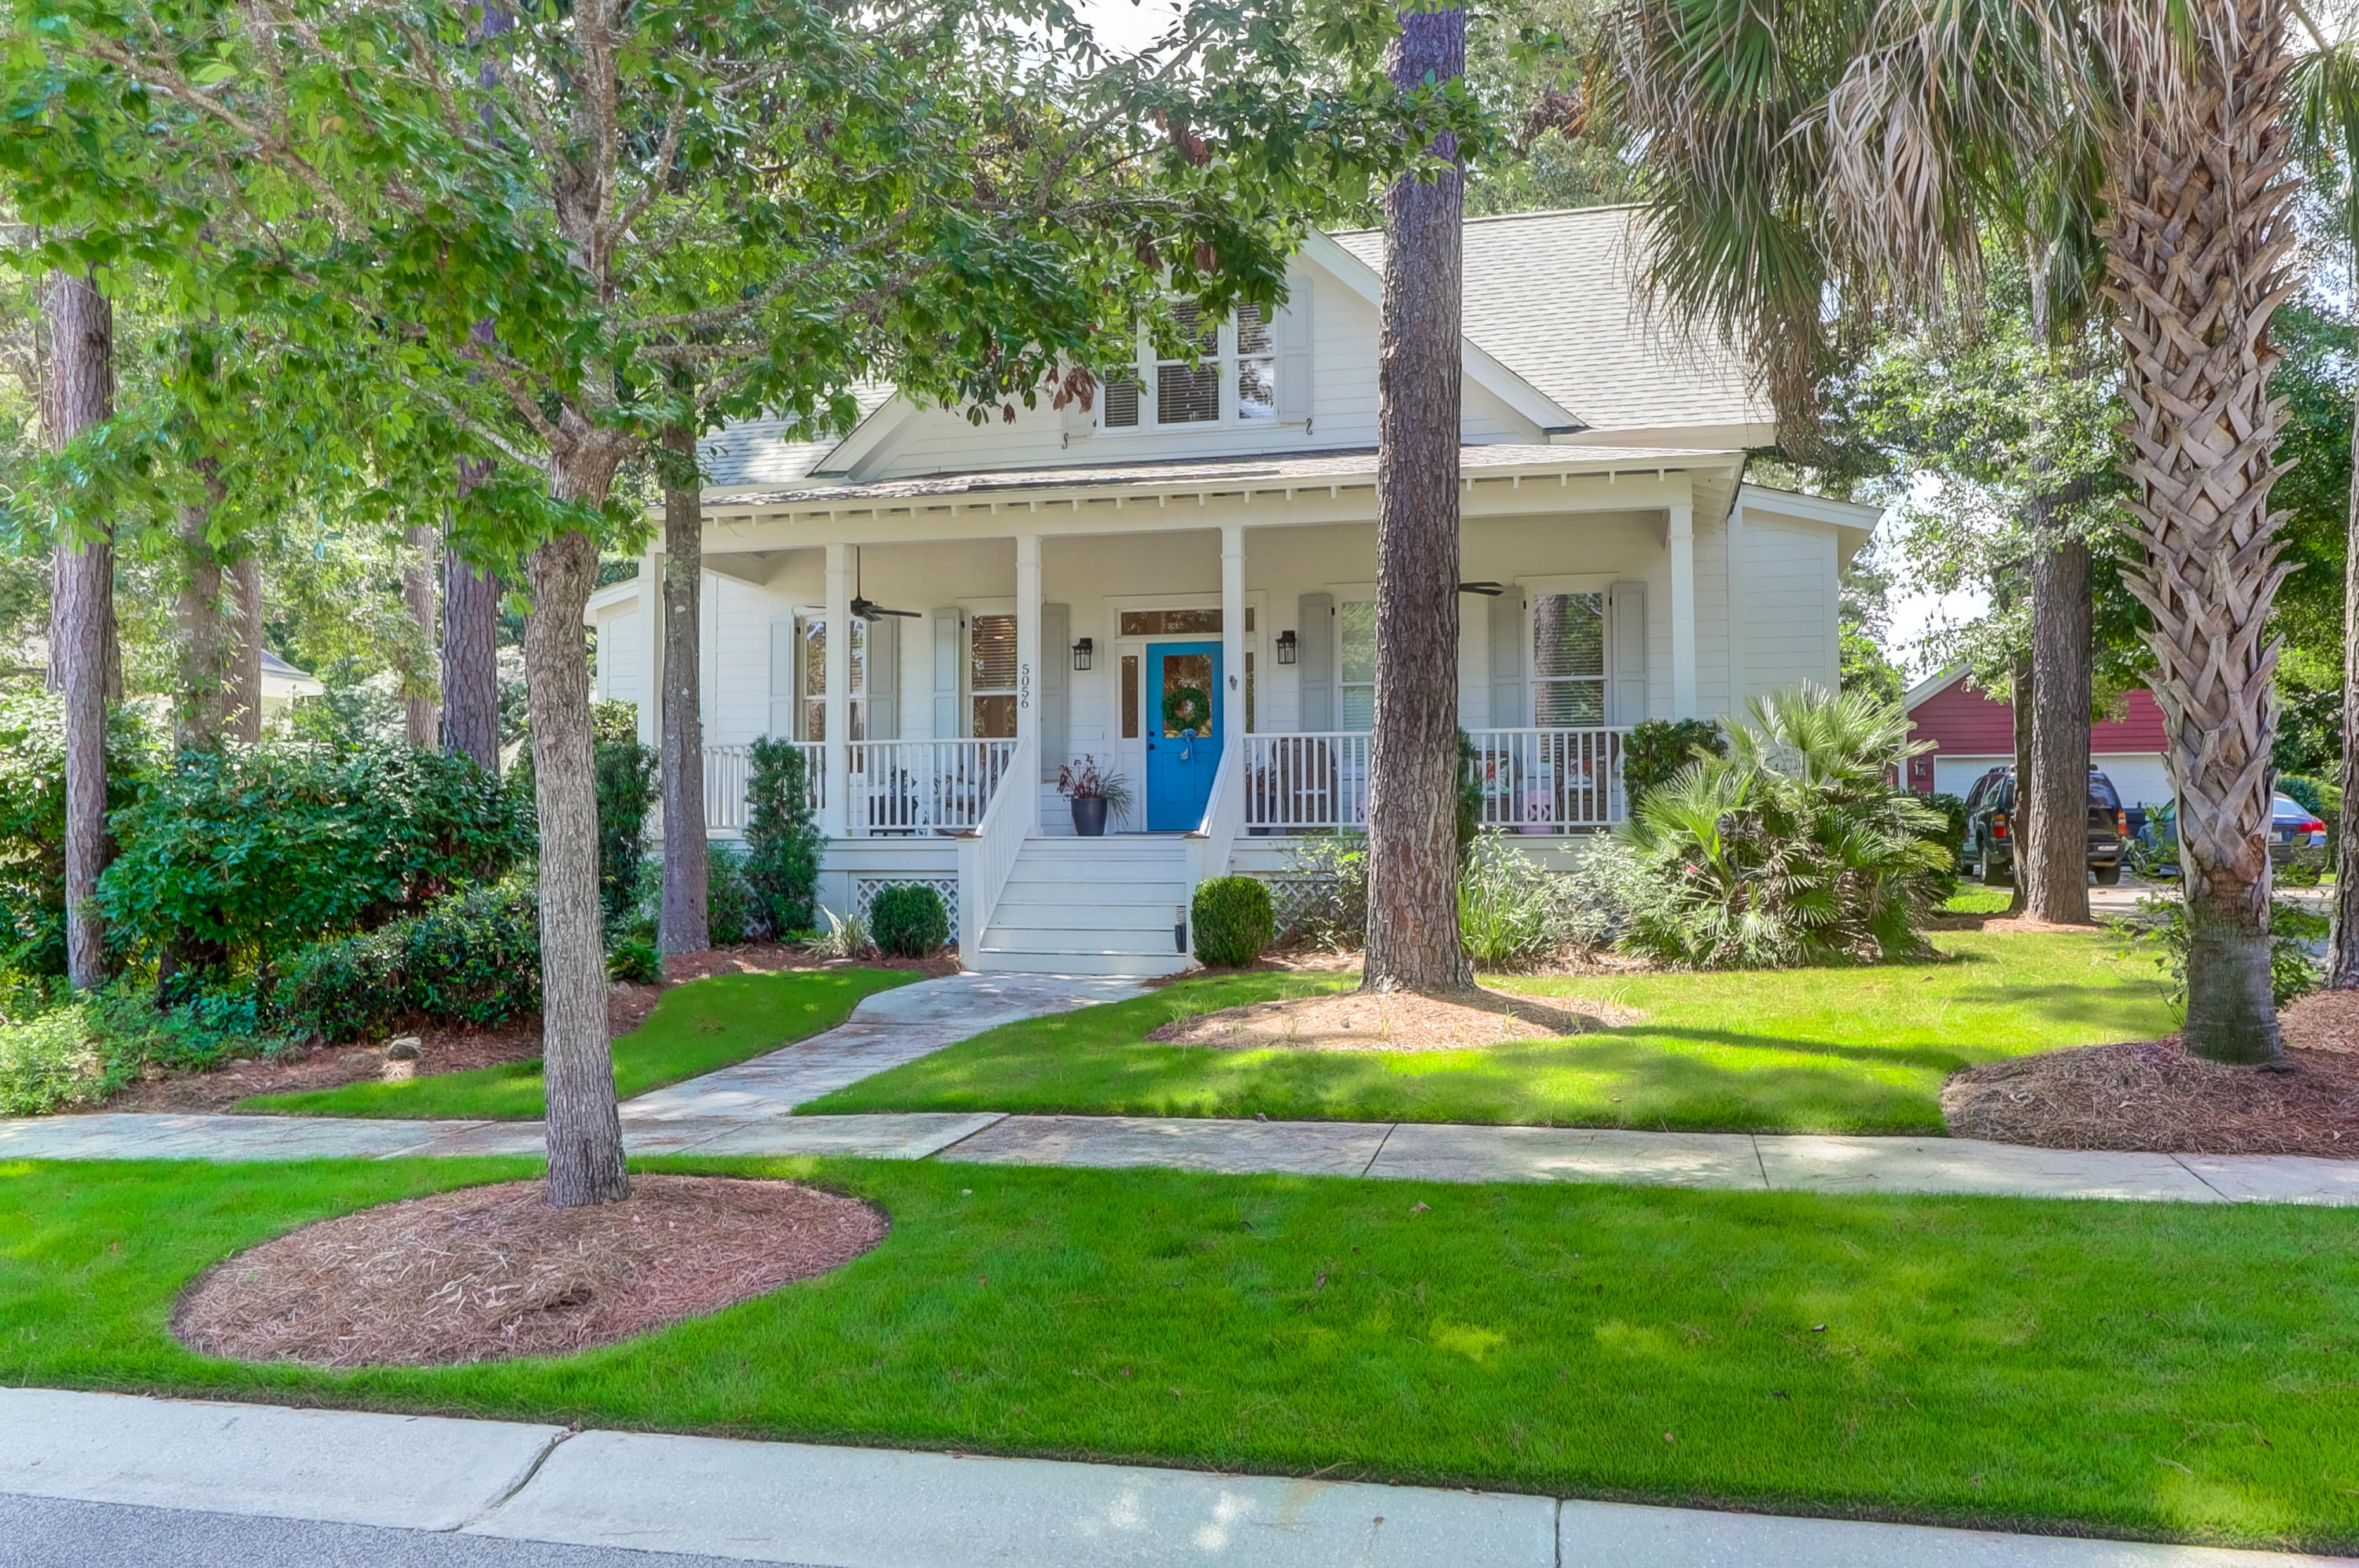 The Villages In St Johns Woods Homes For Sale - 5056 Coral Reef Dr, Johns Island, SC - 0